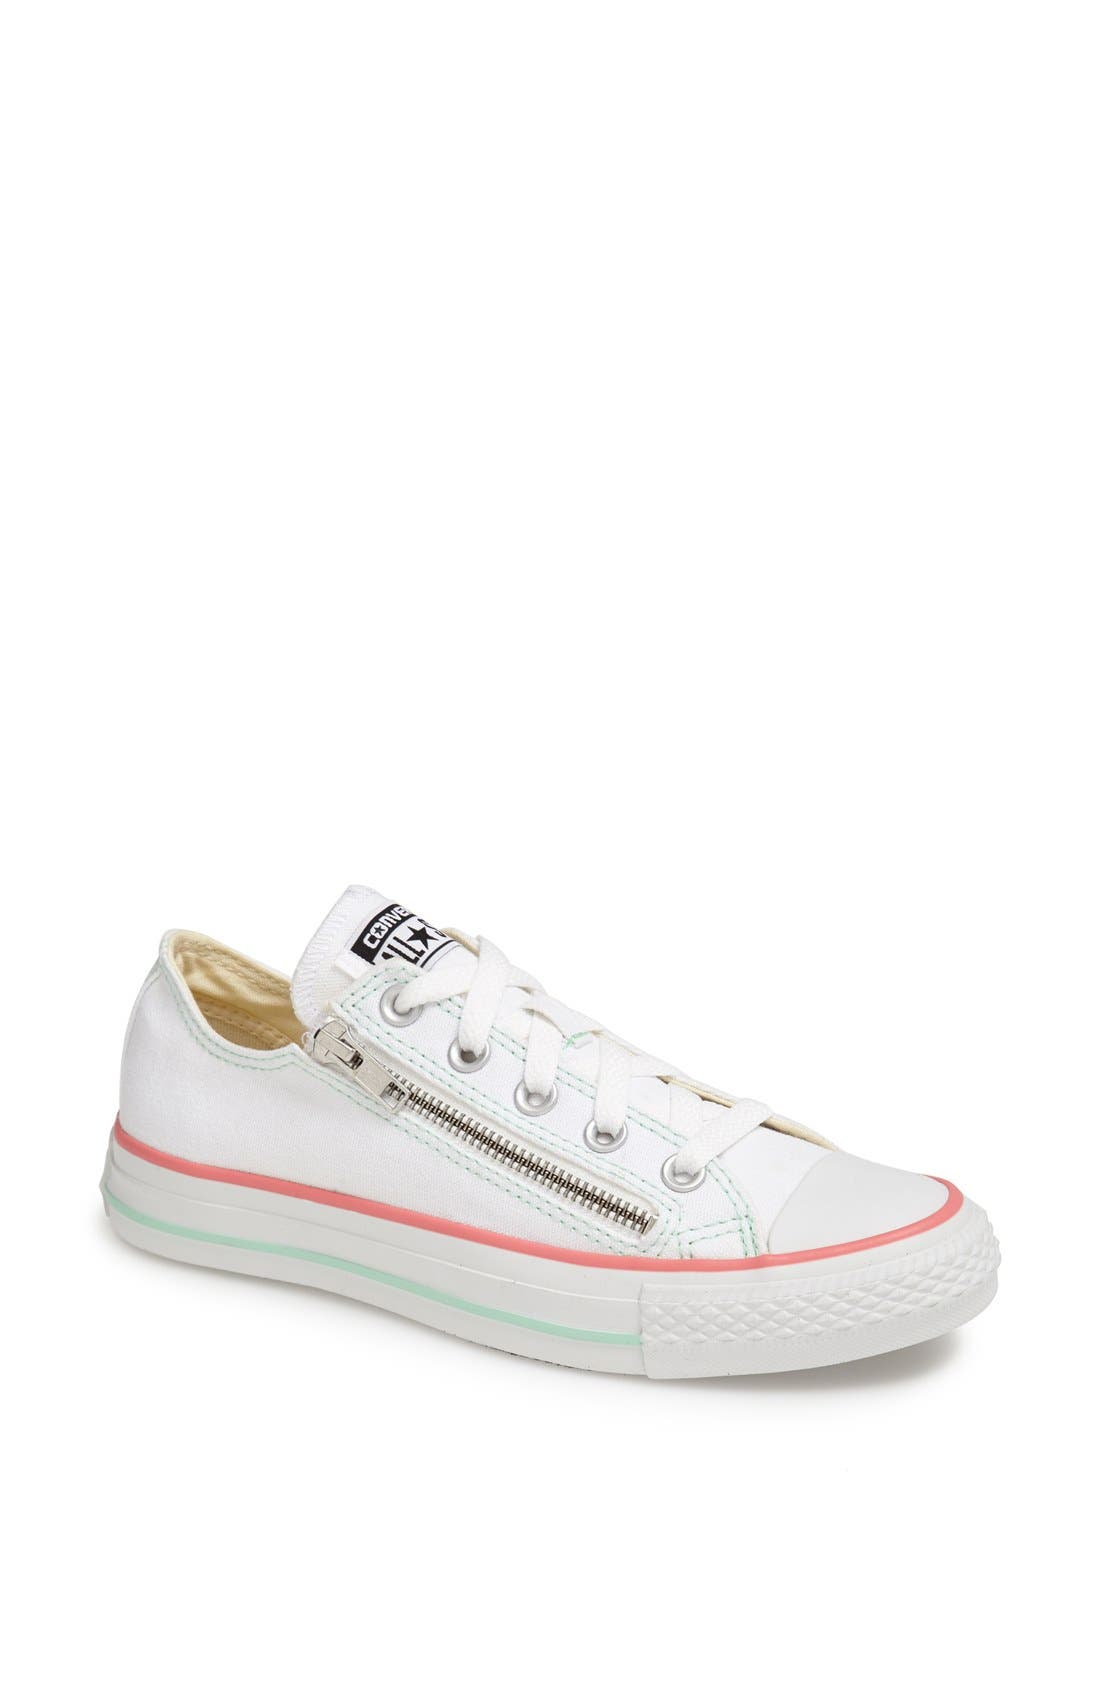 Alternate Image 1 Selected - Converse Chuck Taylor® All Star® Double Zip Low Sneaker (Women)